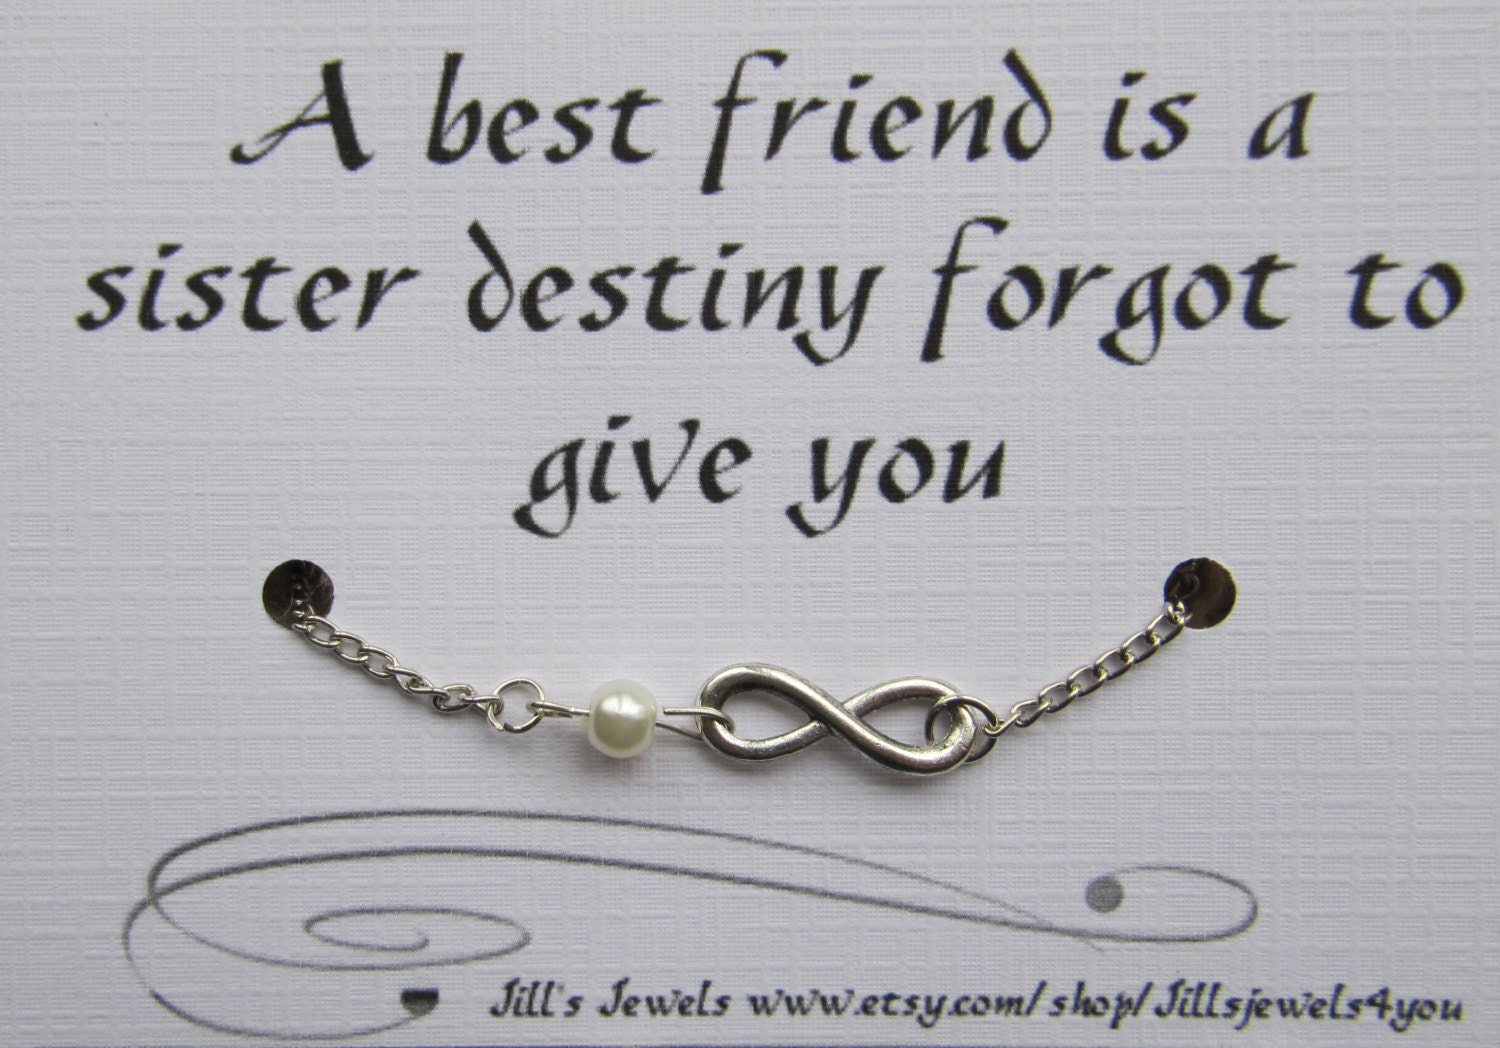 Quotes About Pearls And Friendship Best Friend Infinity Charm Bracelet With Pearl And Quote